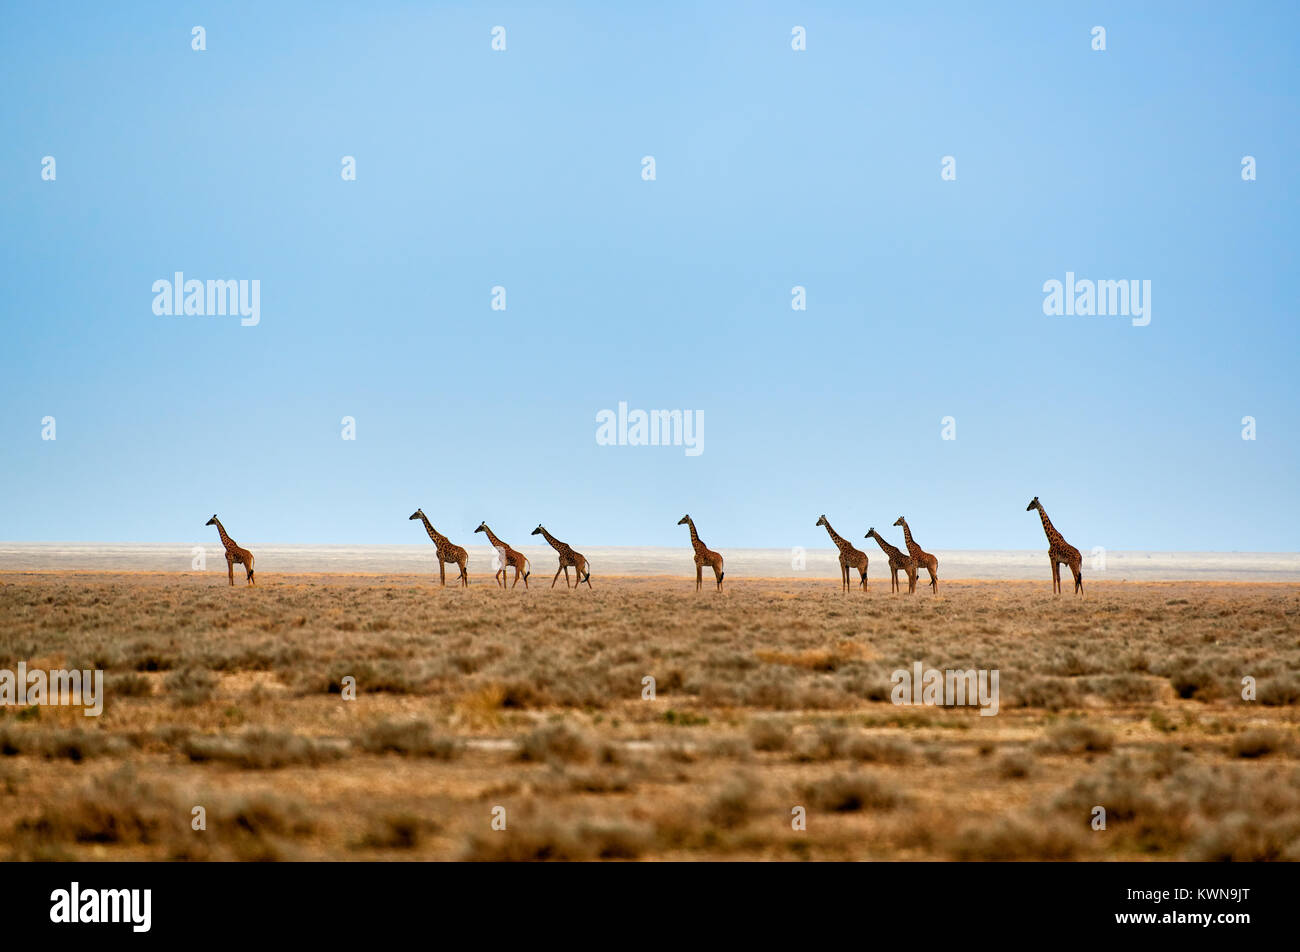 herd of Masai giraffes on dry Serengeti plains, Serengeti National Park, UNESCO world heritage site, Tanzania, Africa - Stock Image